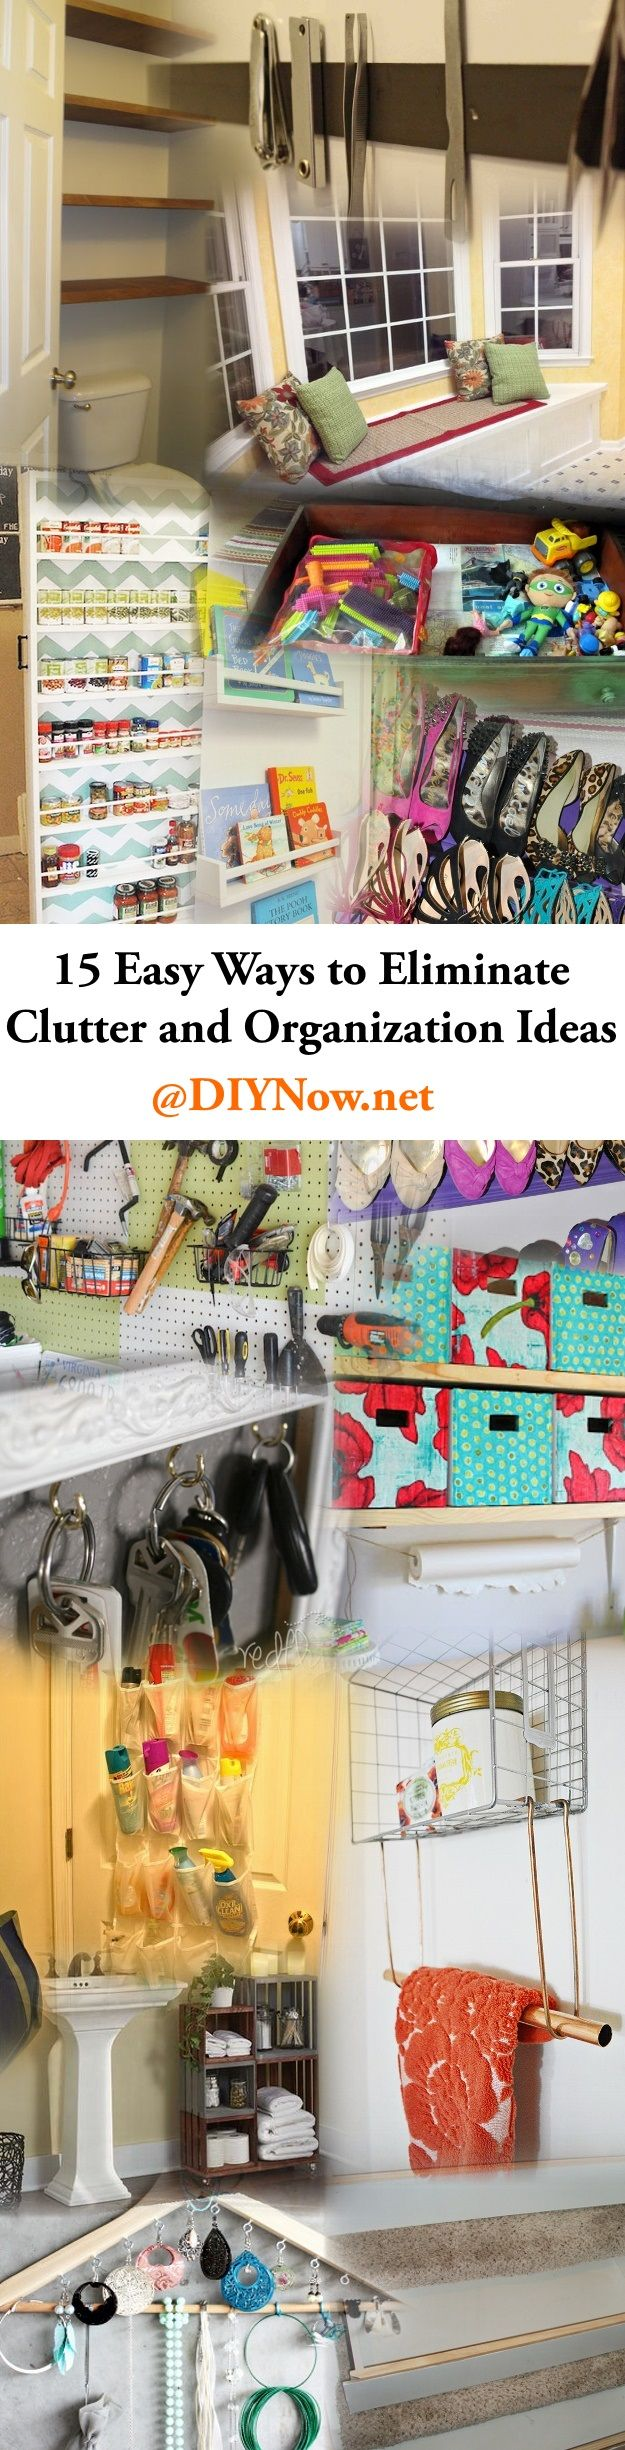 15 Easy Ways to Eliminate Clutter and Organization Ideas